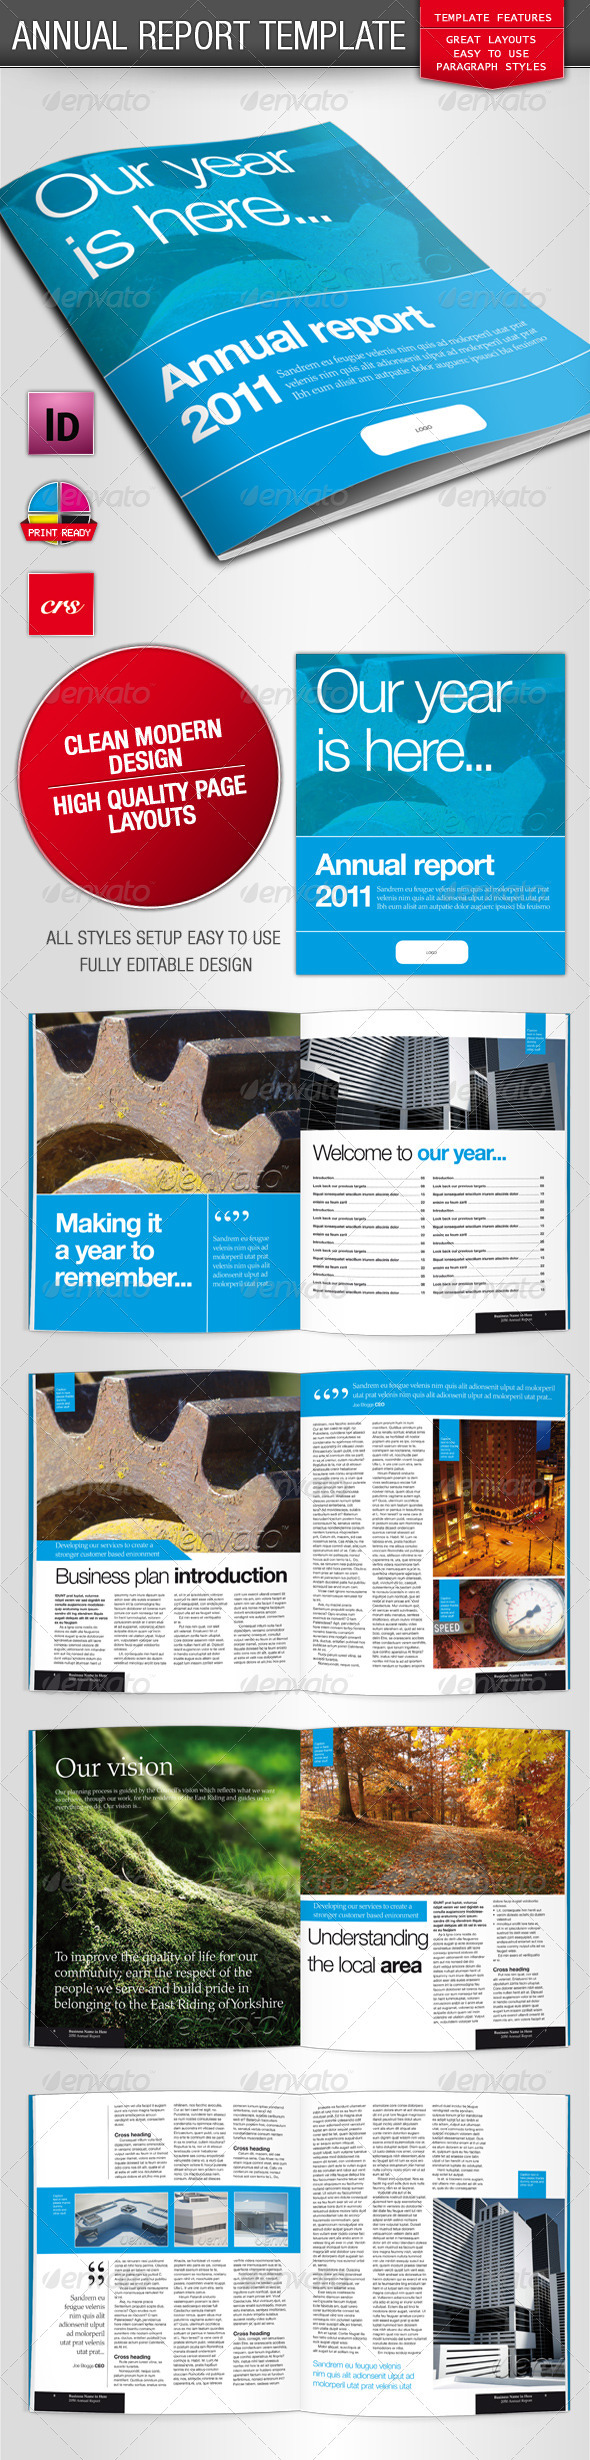 annual financial report template annual financial report template dimension n tk